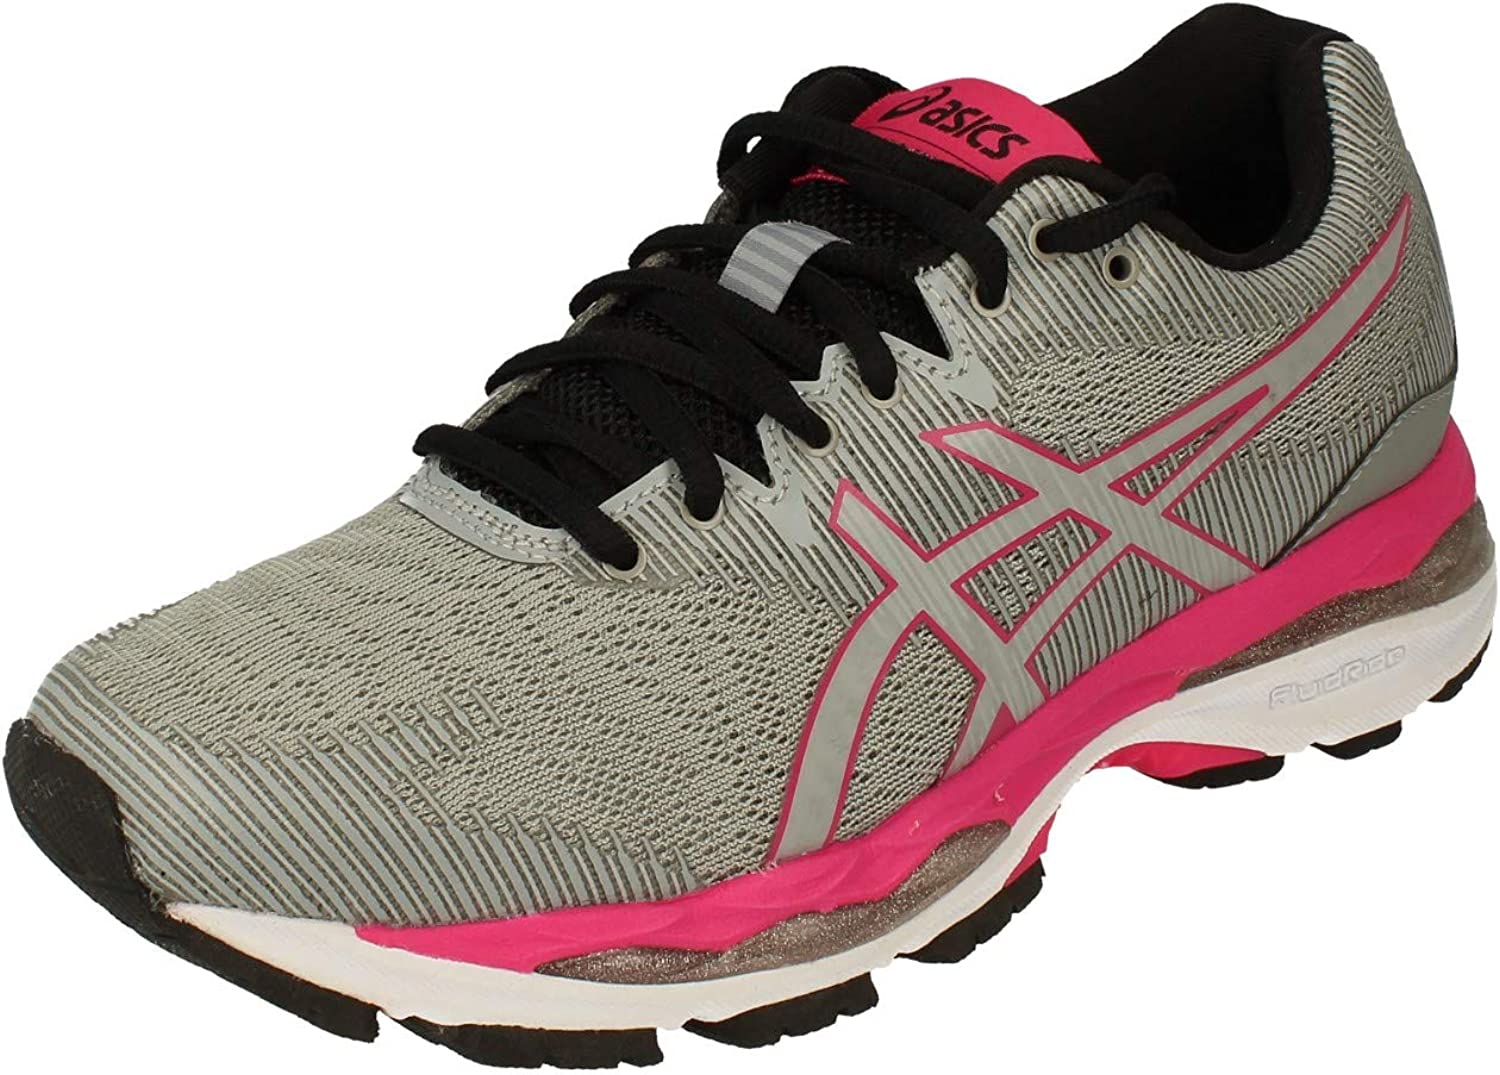 Asics Gel-Ziruss 2 Mujeres Running Trainers 1012A014 Sneakers Zapatos